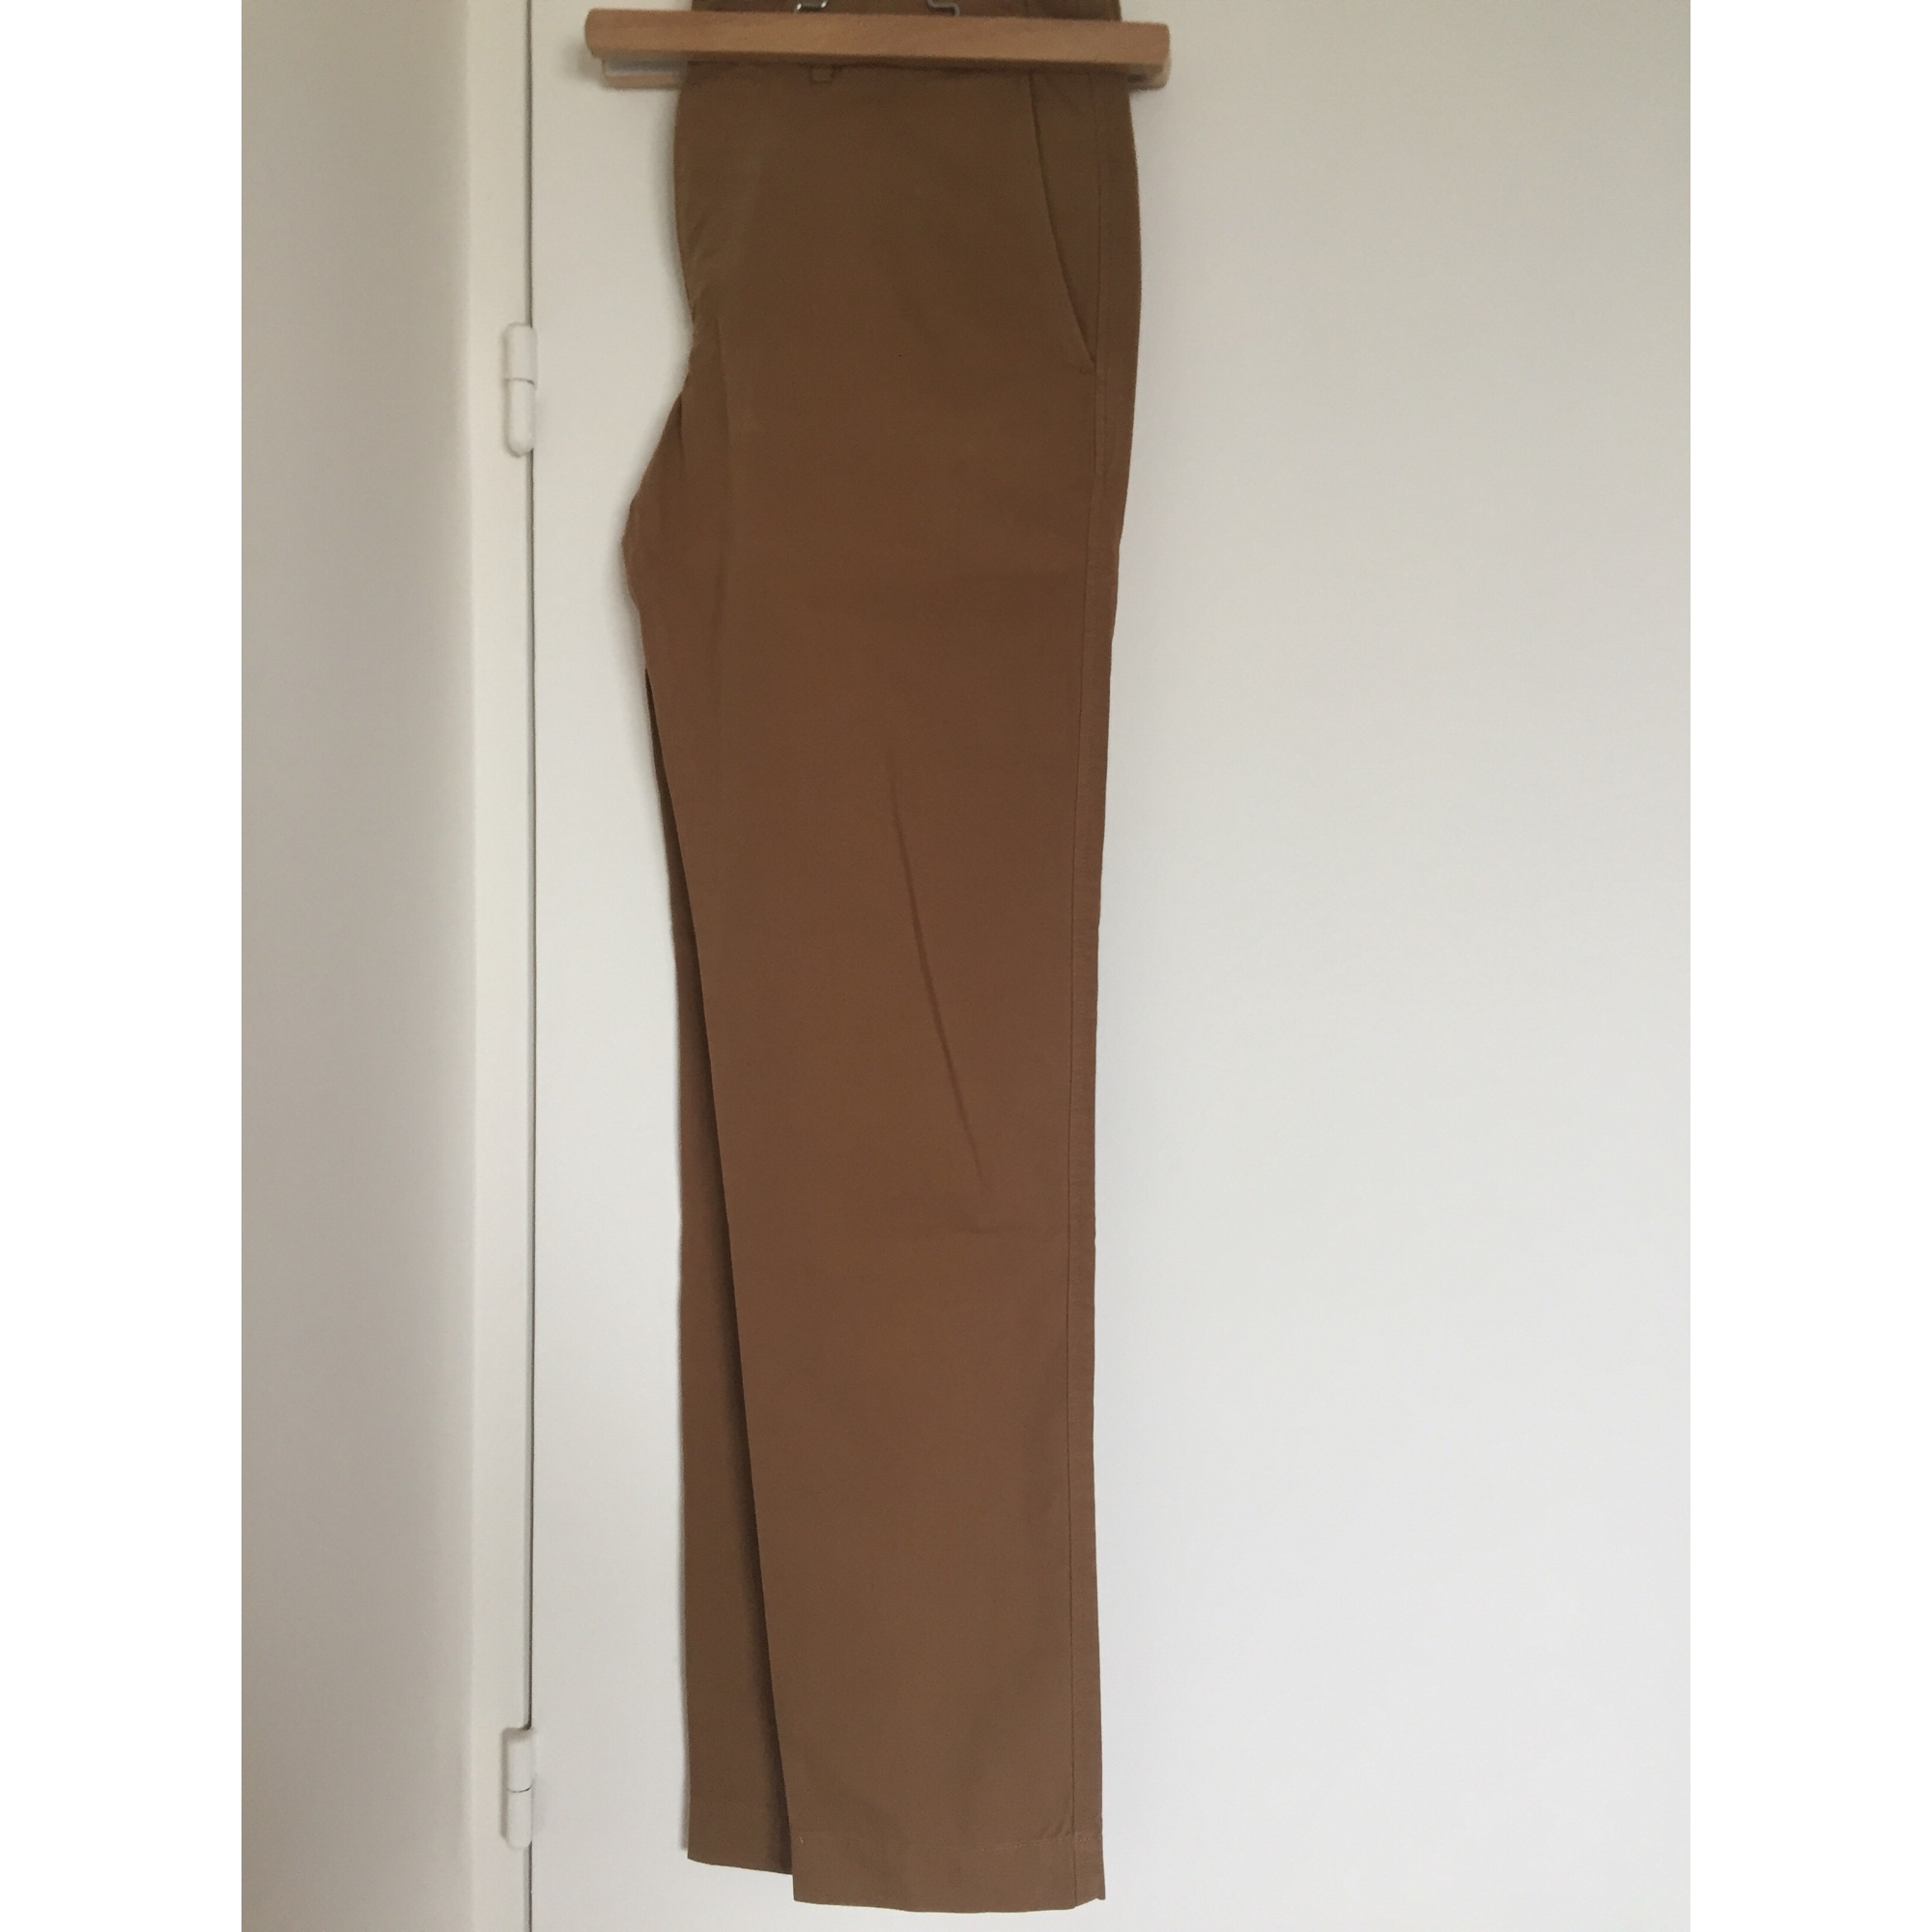 Pantalon droit LACOSTE Marron